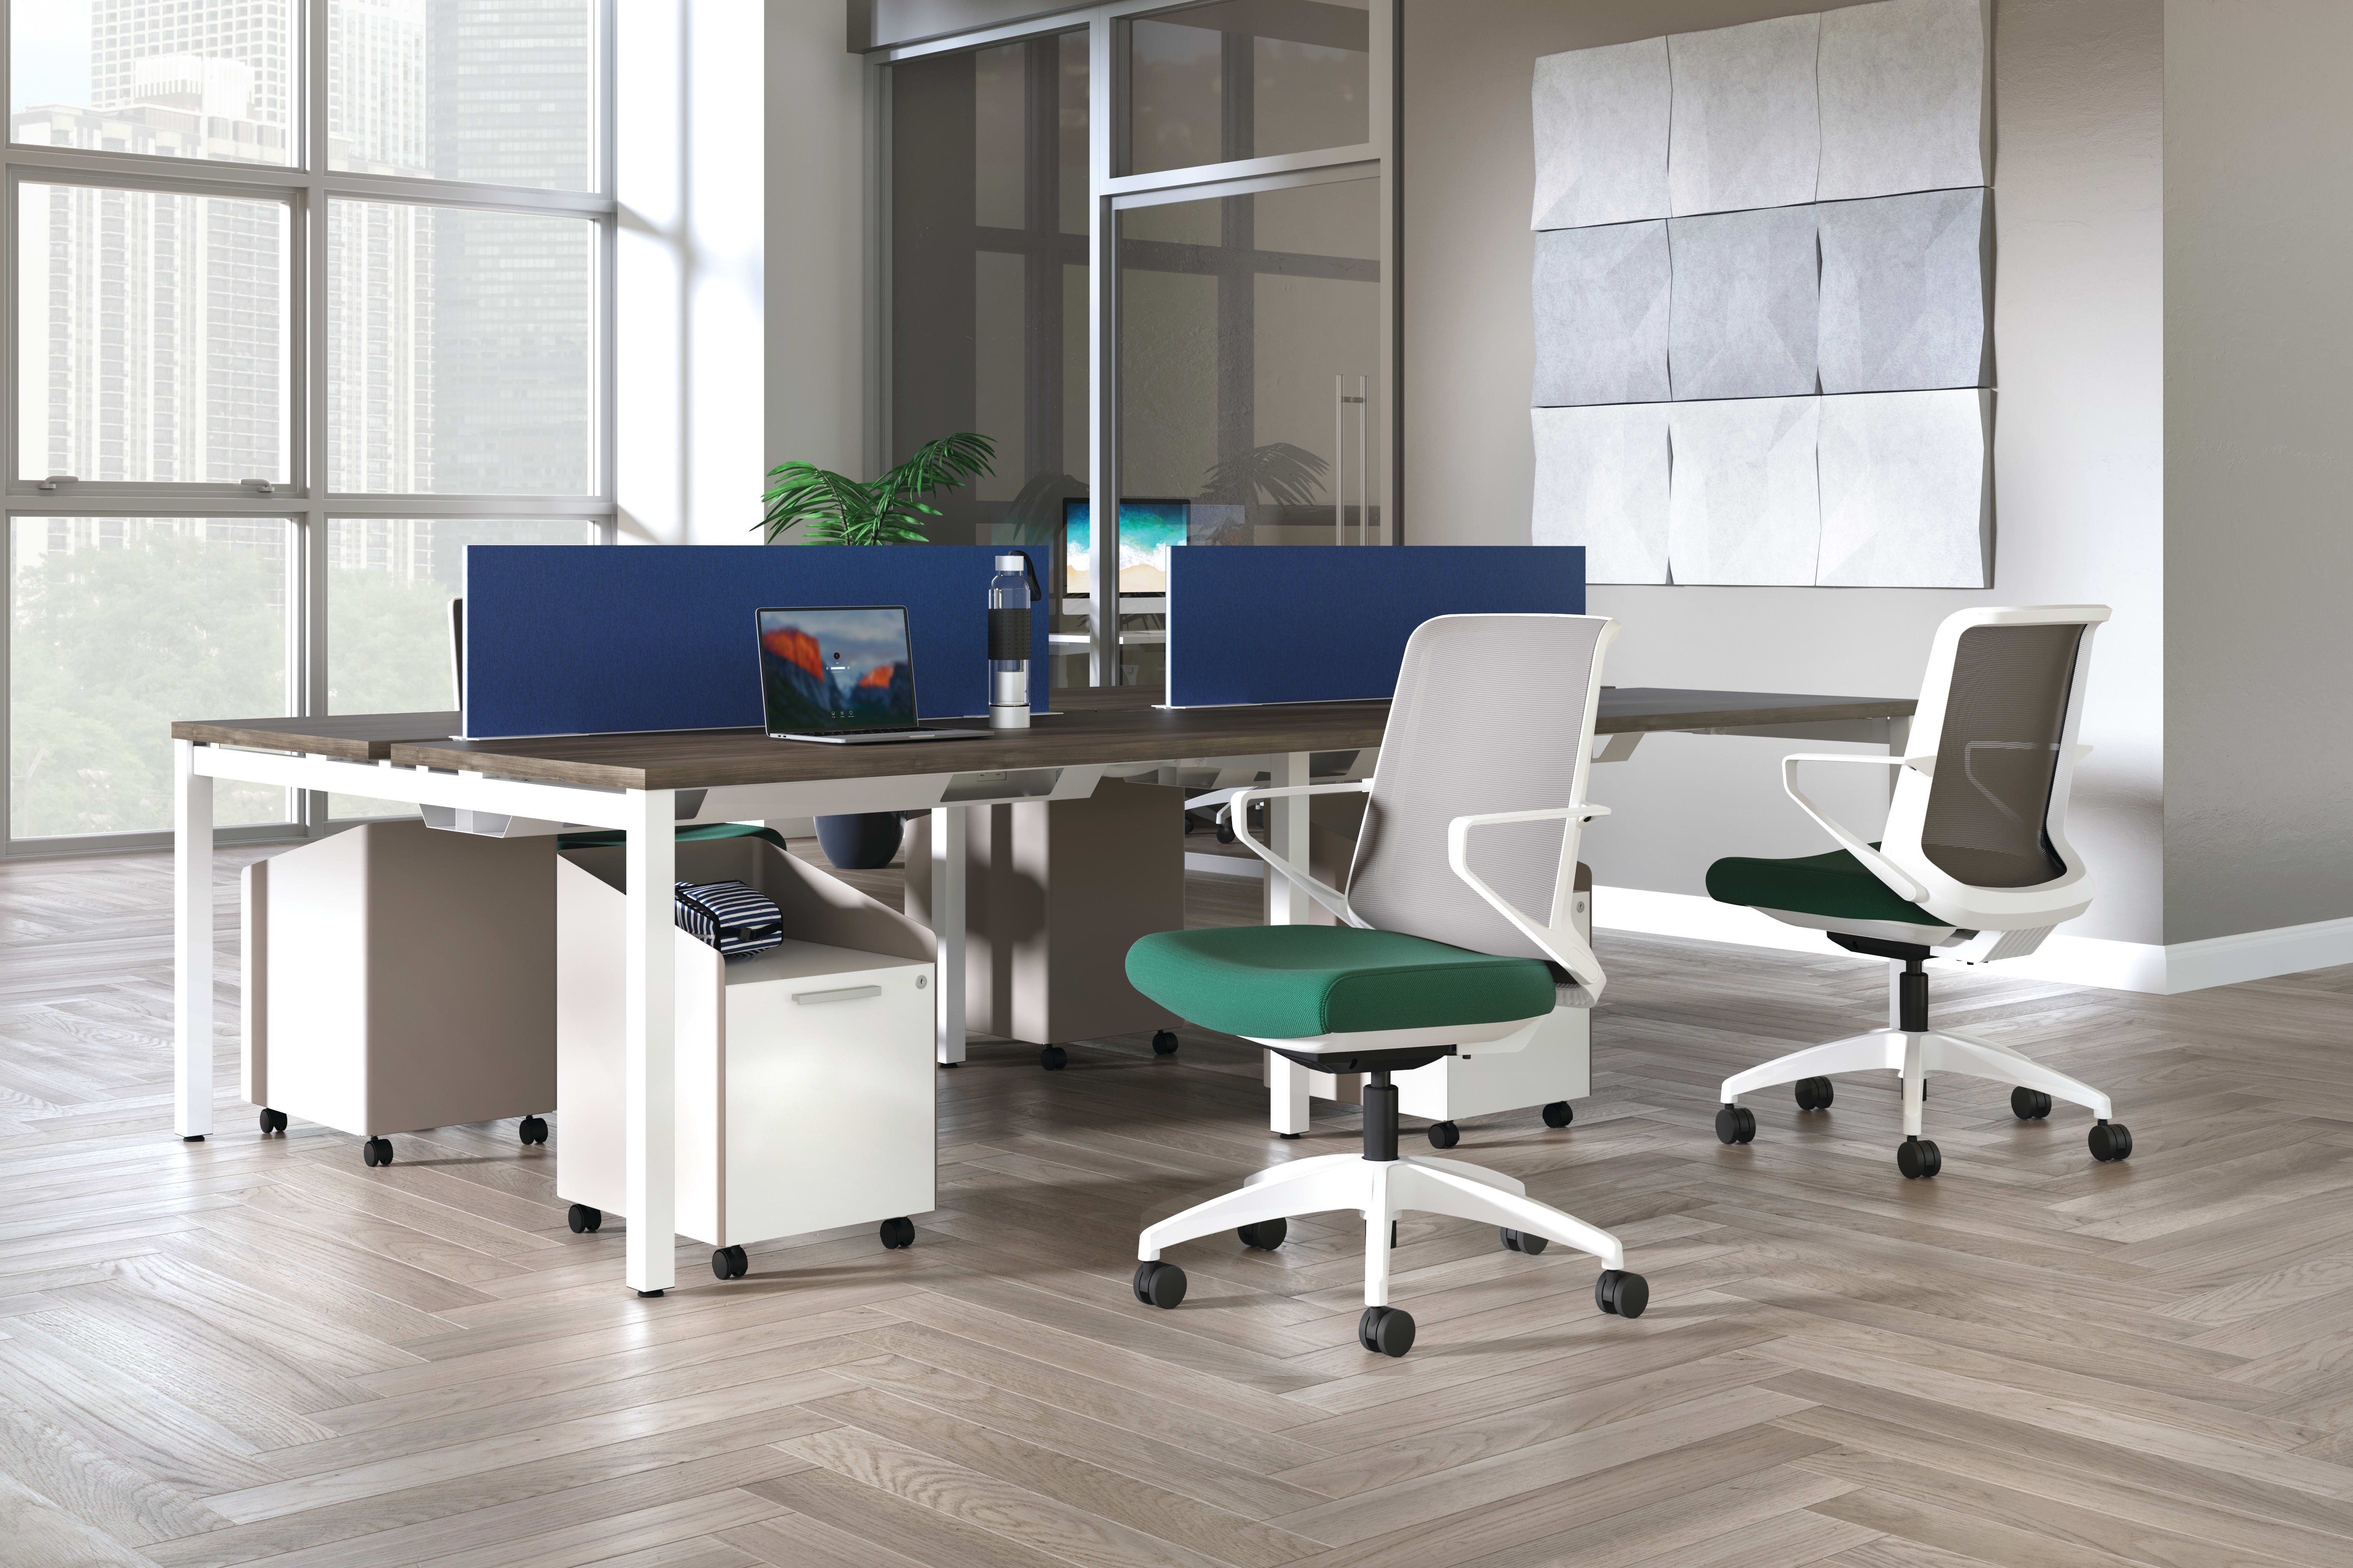 Cliq chairs with Empower workstations and Fuse pedestals.